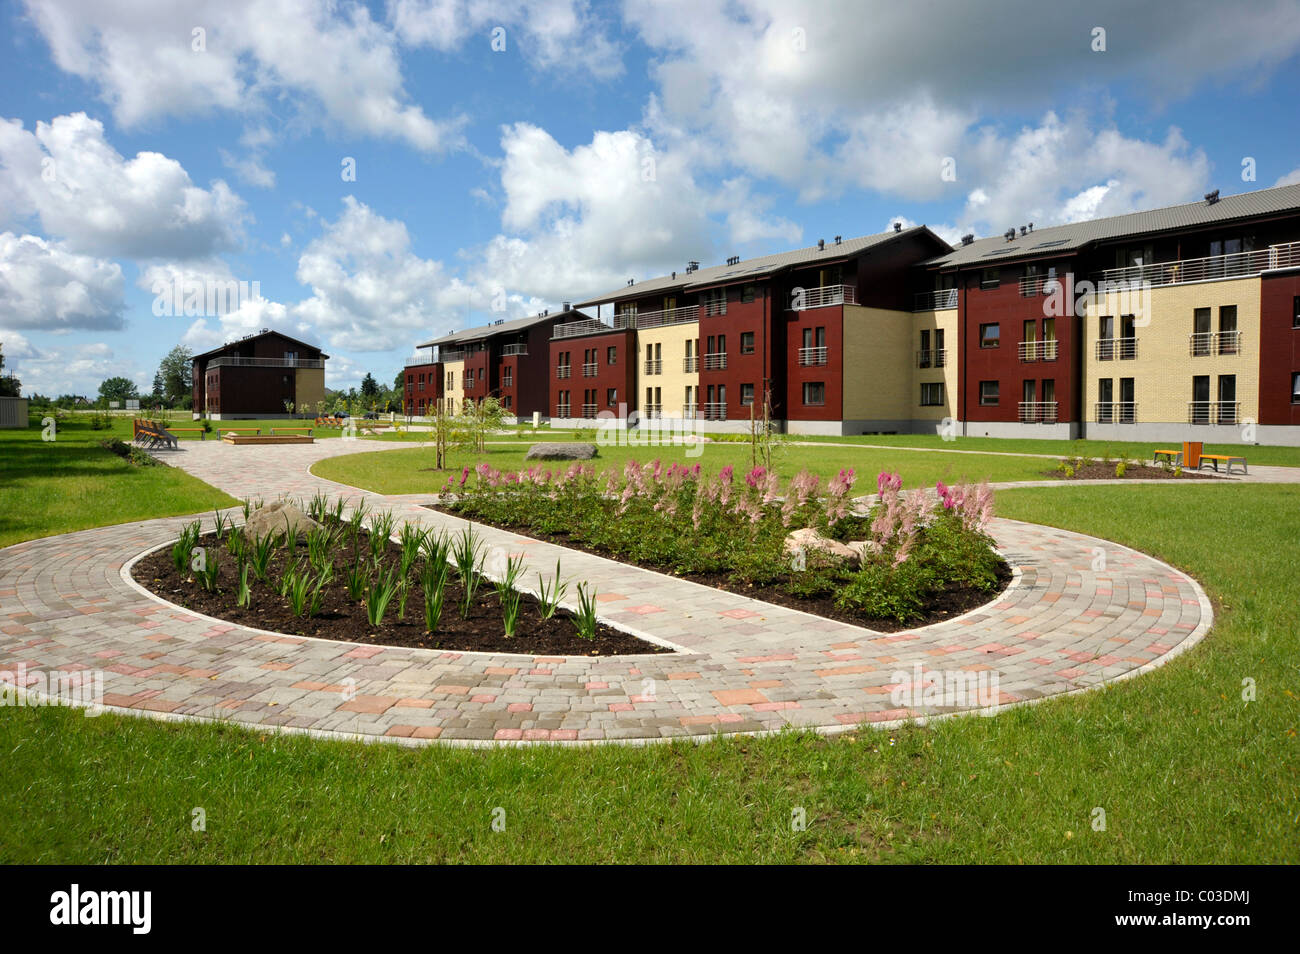 New development, new construction project with funding from the European Union, Balvi, Latvia, Baltic States, Europe - Stock Image